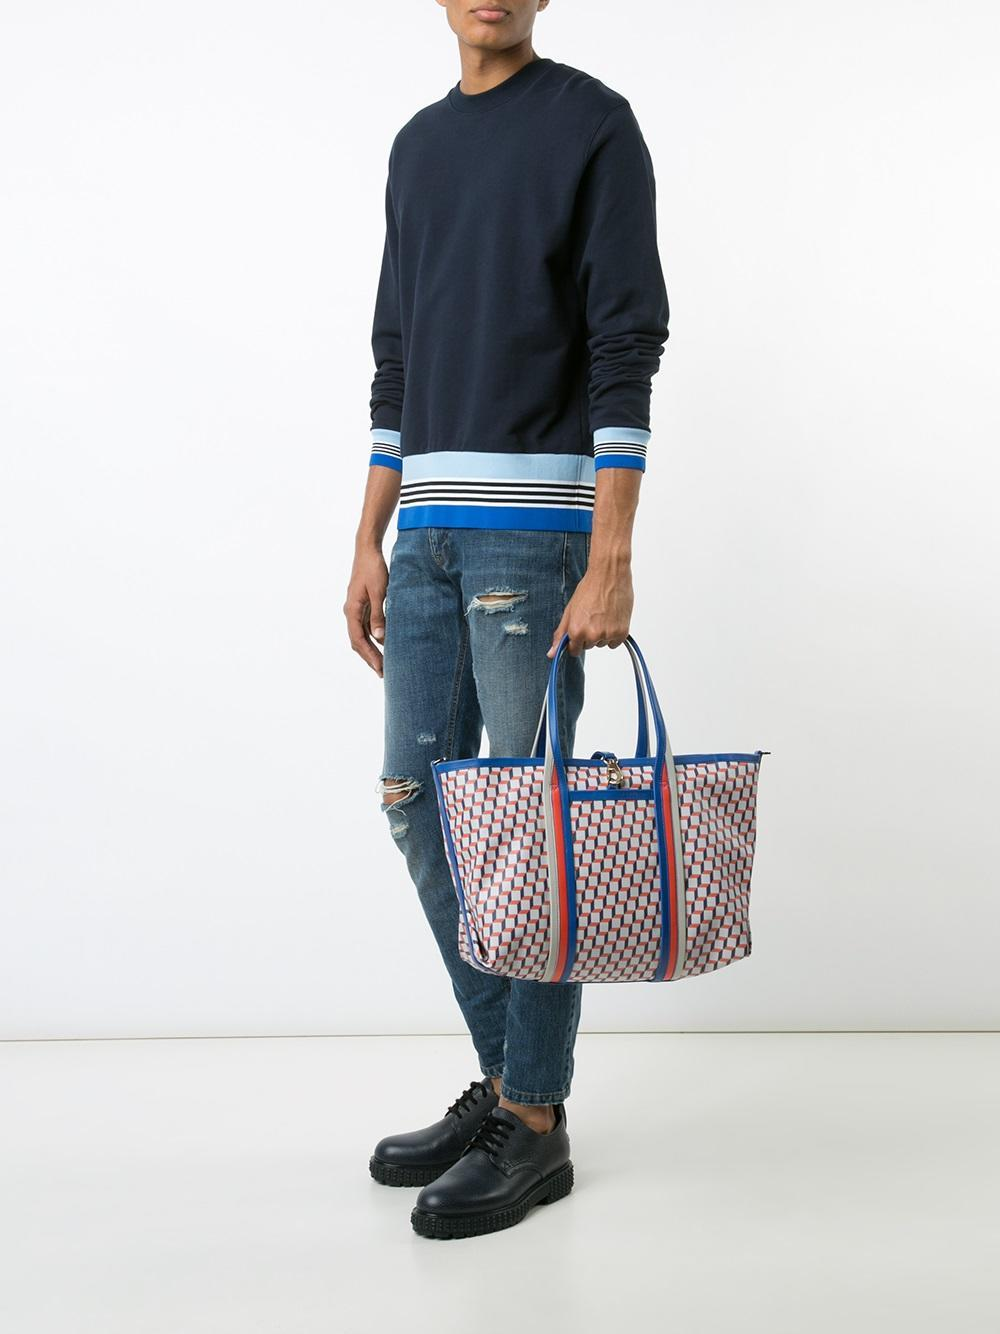 Pierre Hardy Leather Geometric Print Tote in Blue